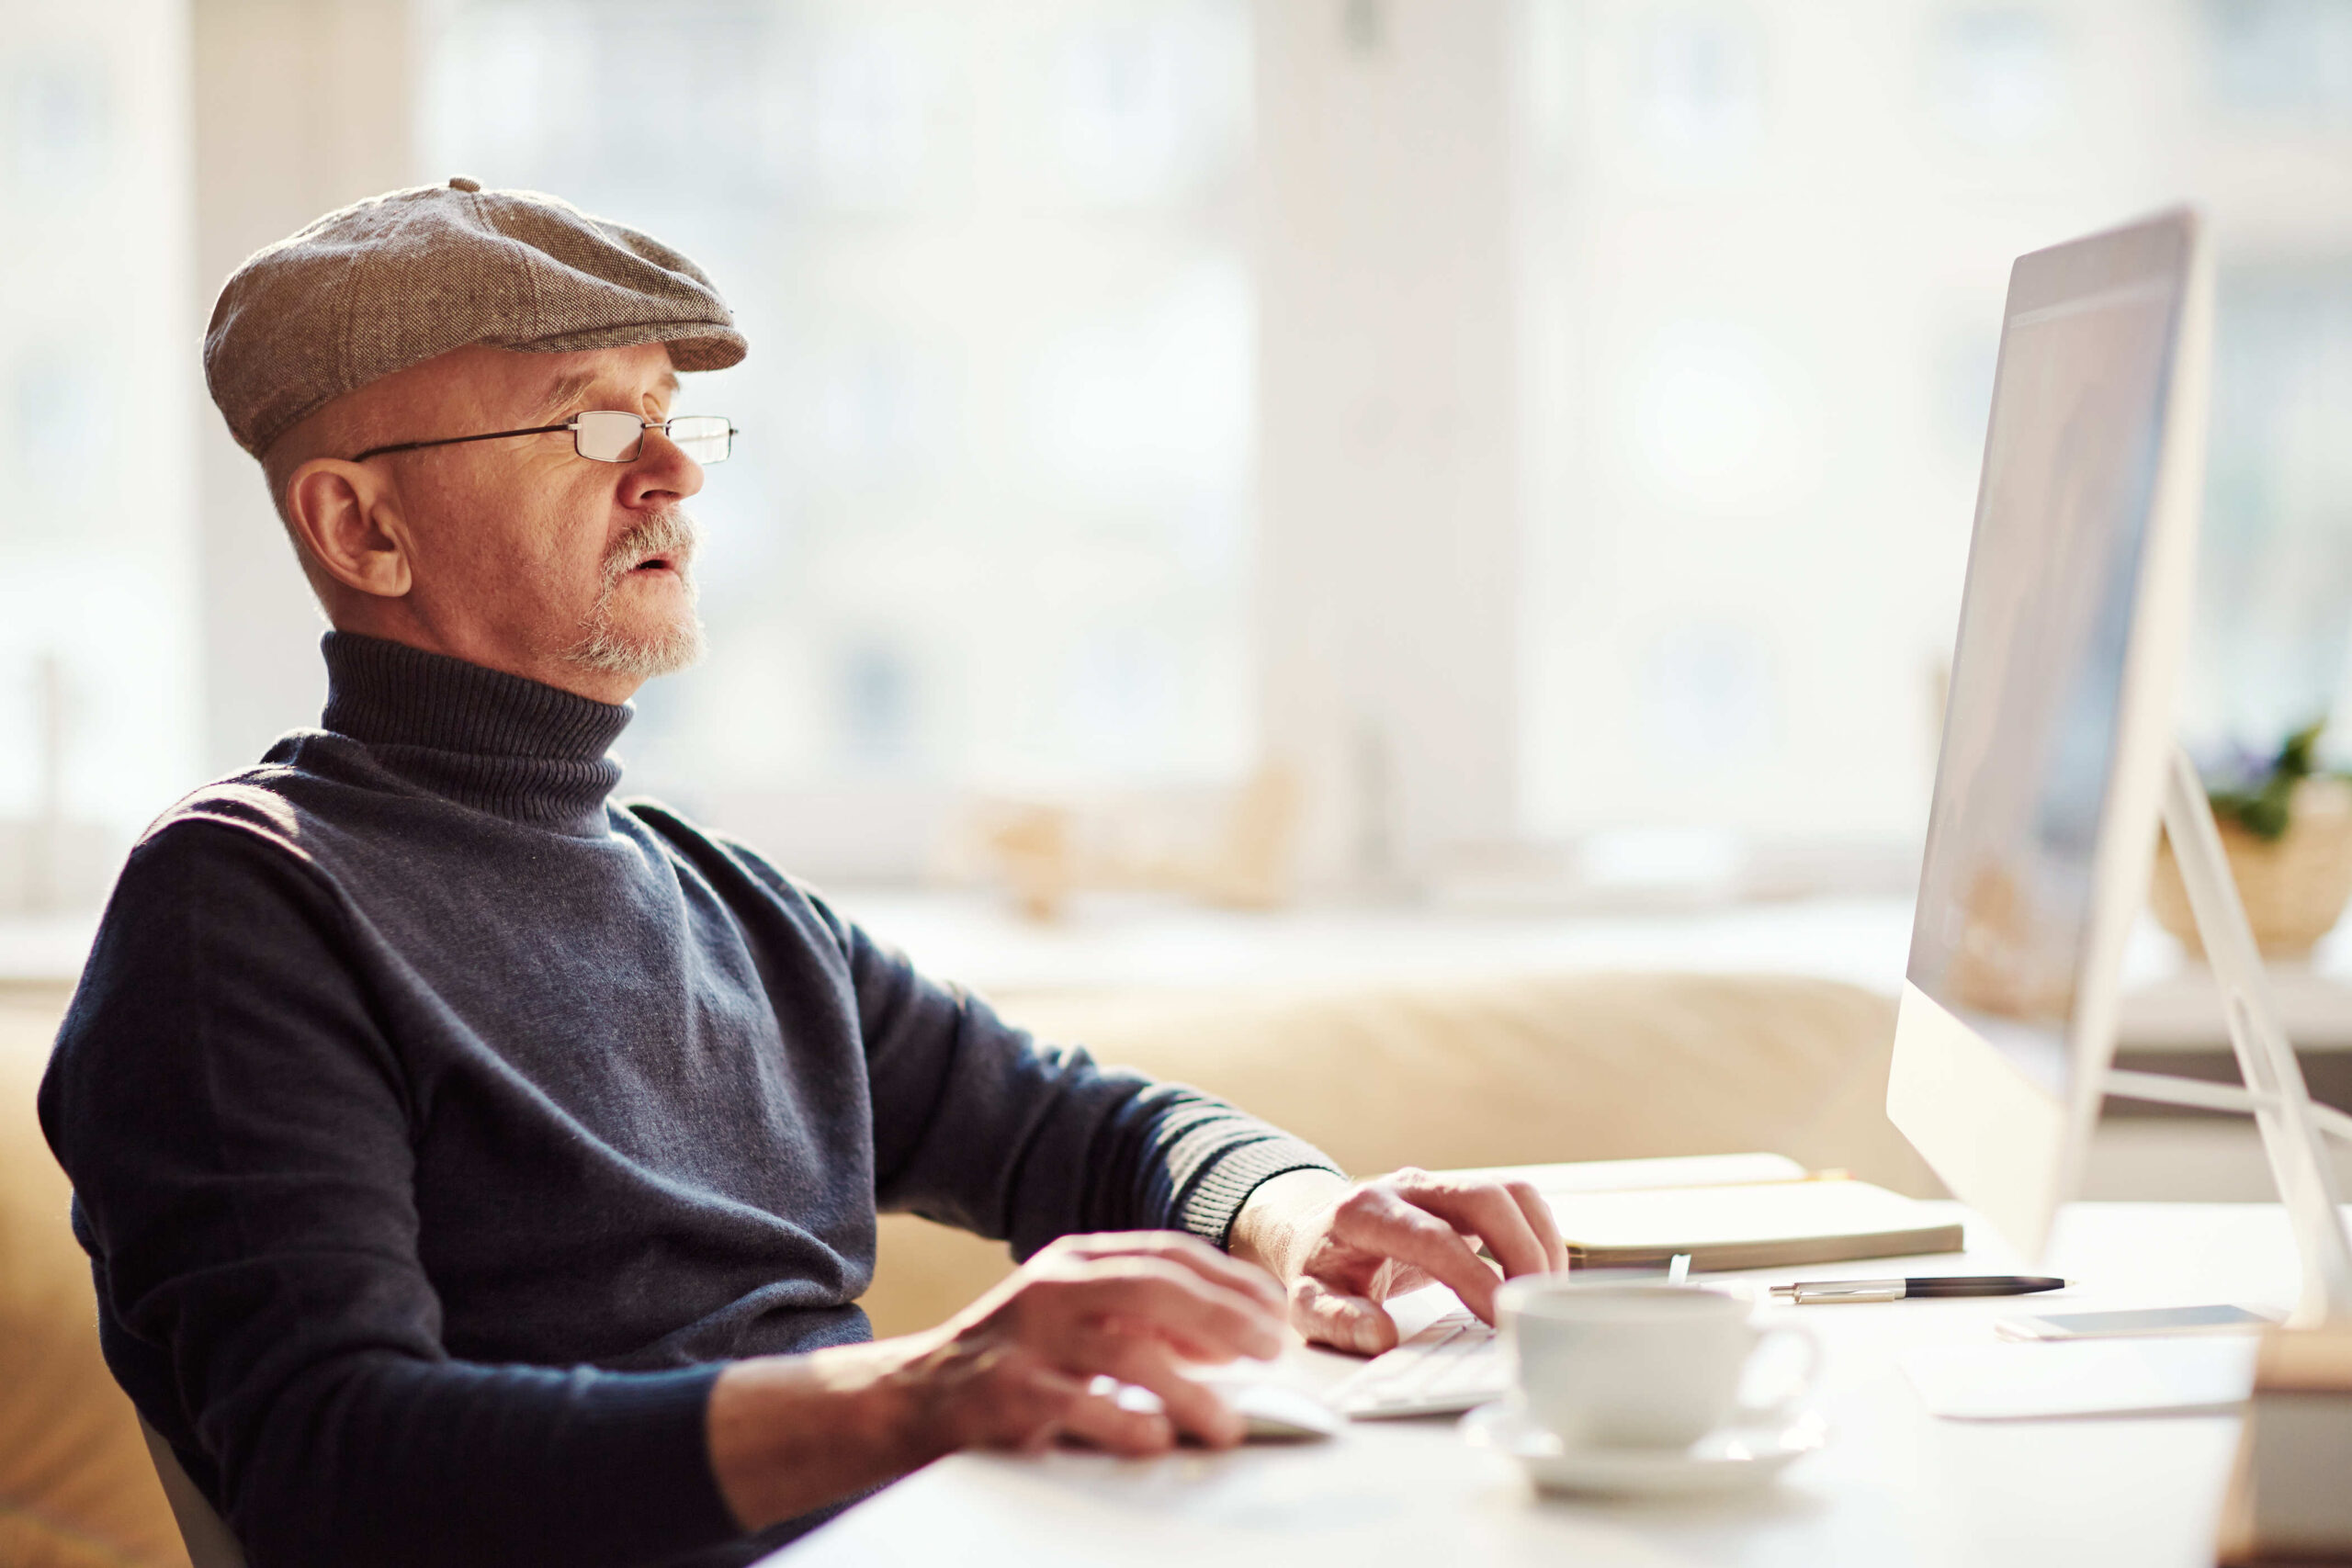 old-man-computing-soccer-odds-content-image